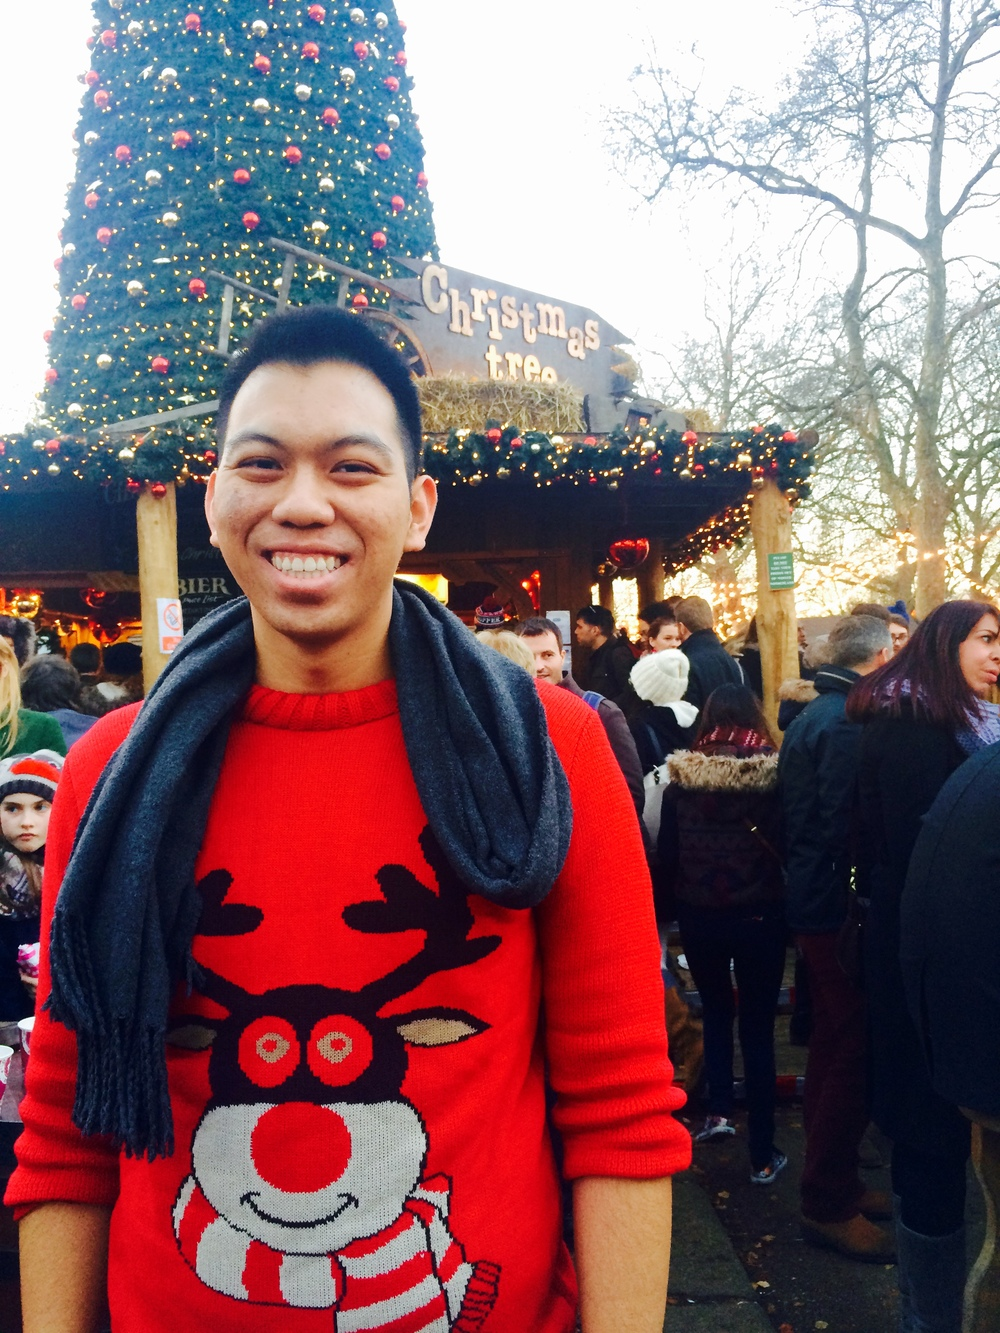 In my Christmas jumper at Winter Wonderland at Hyde Park, London